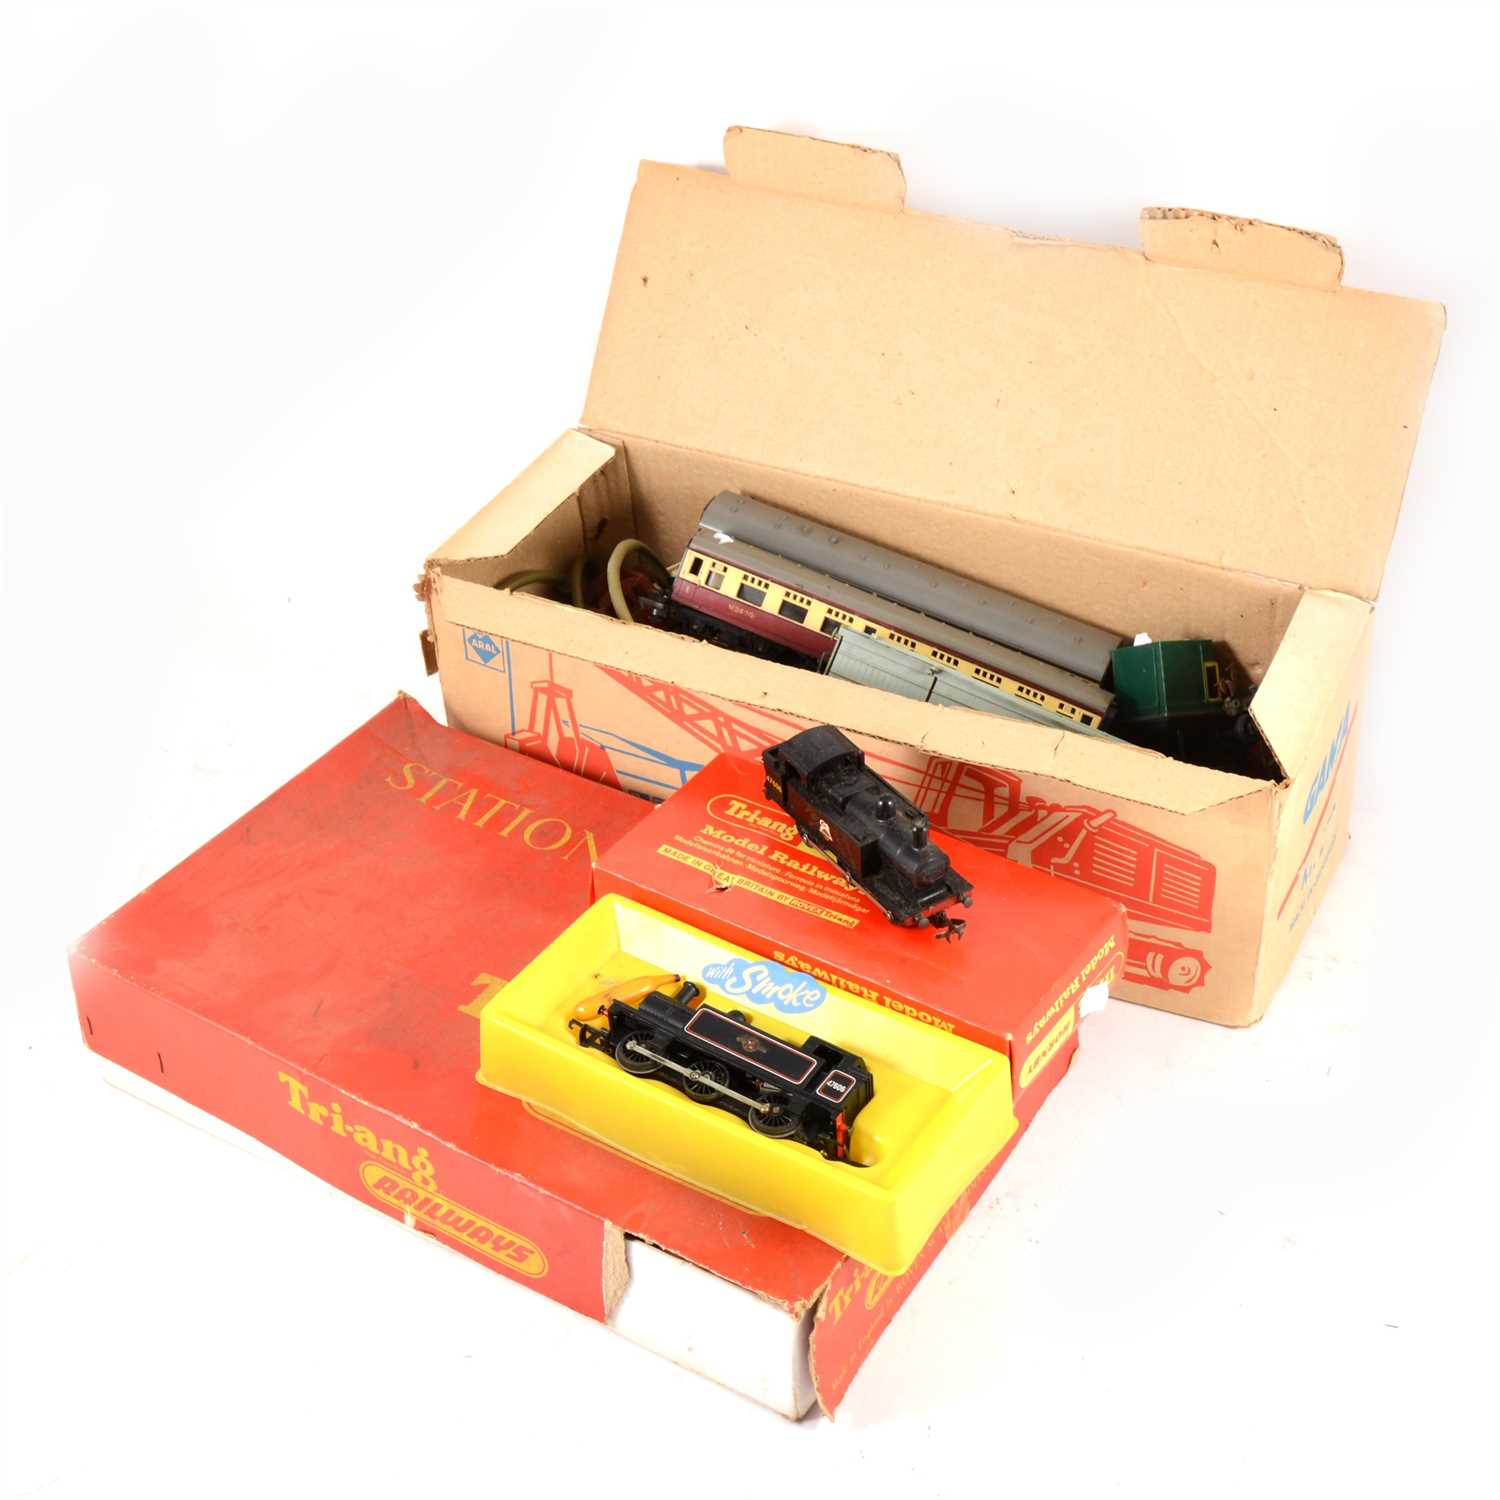 Lot 45-Tri-ang OO gauge railway, and an empty box for a Gama crane truck.